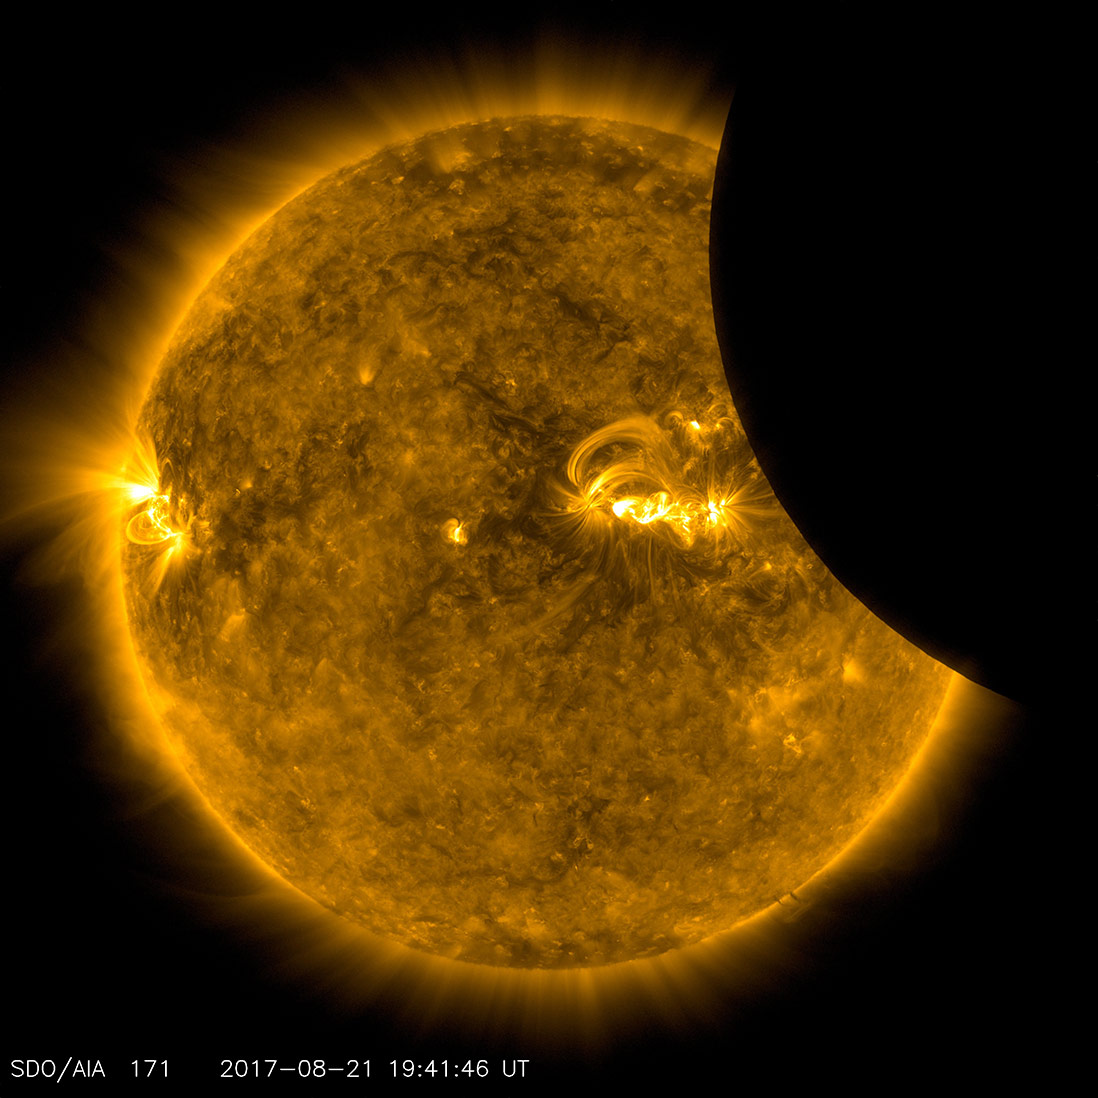 Image of the Moon transiting across the Sun, taken by SDO in 171 ångstrom extreme ultraviolet light on August 21, 2017. Credit: NASA/SDO